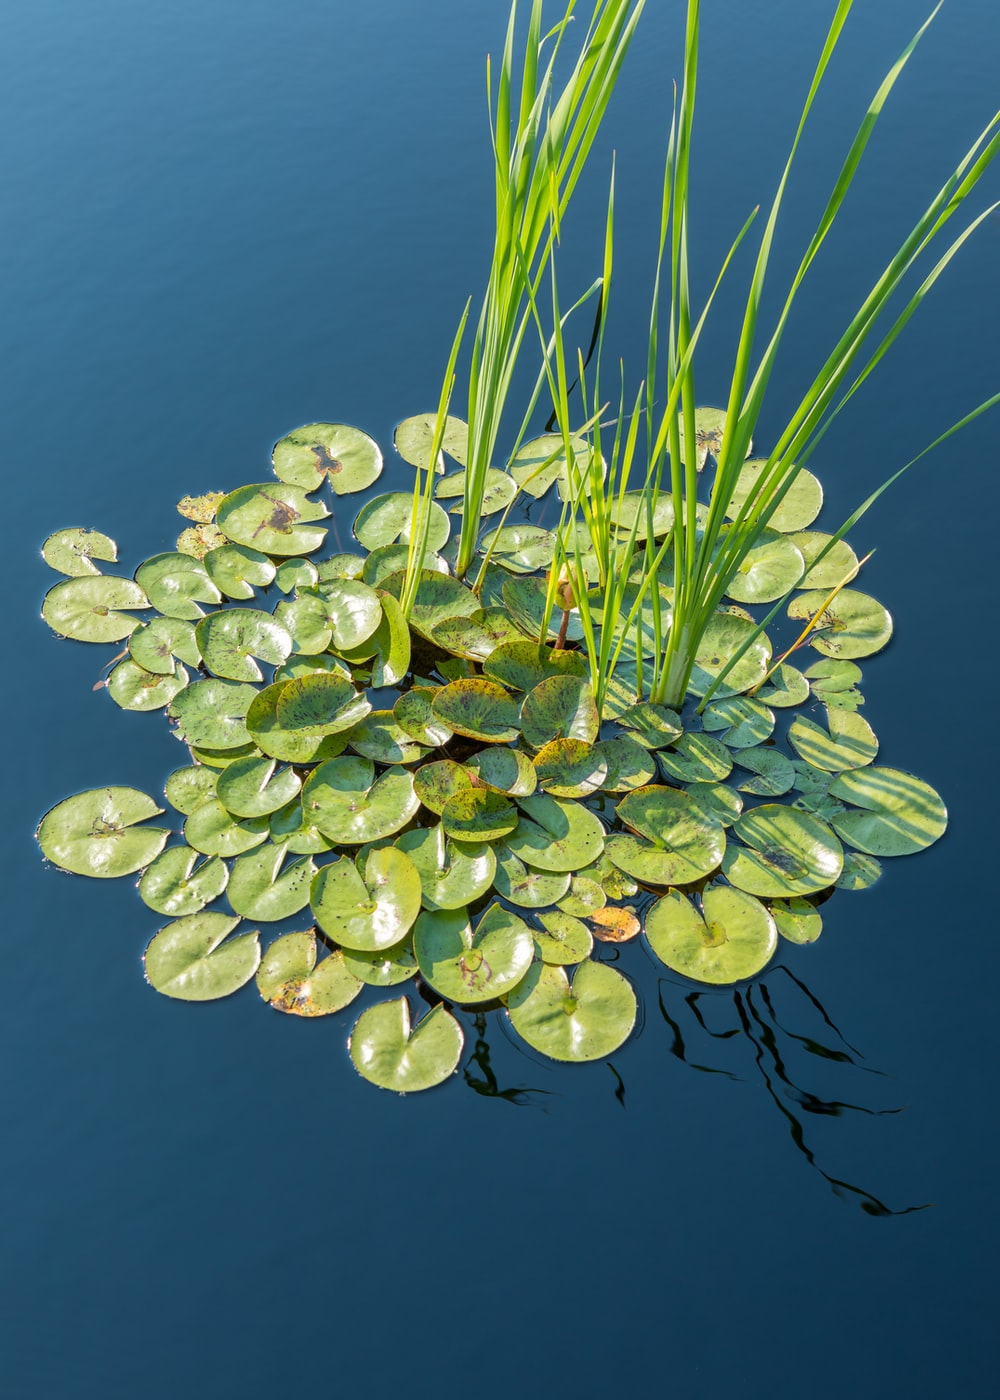 green and white plant on water